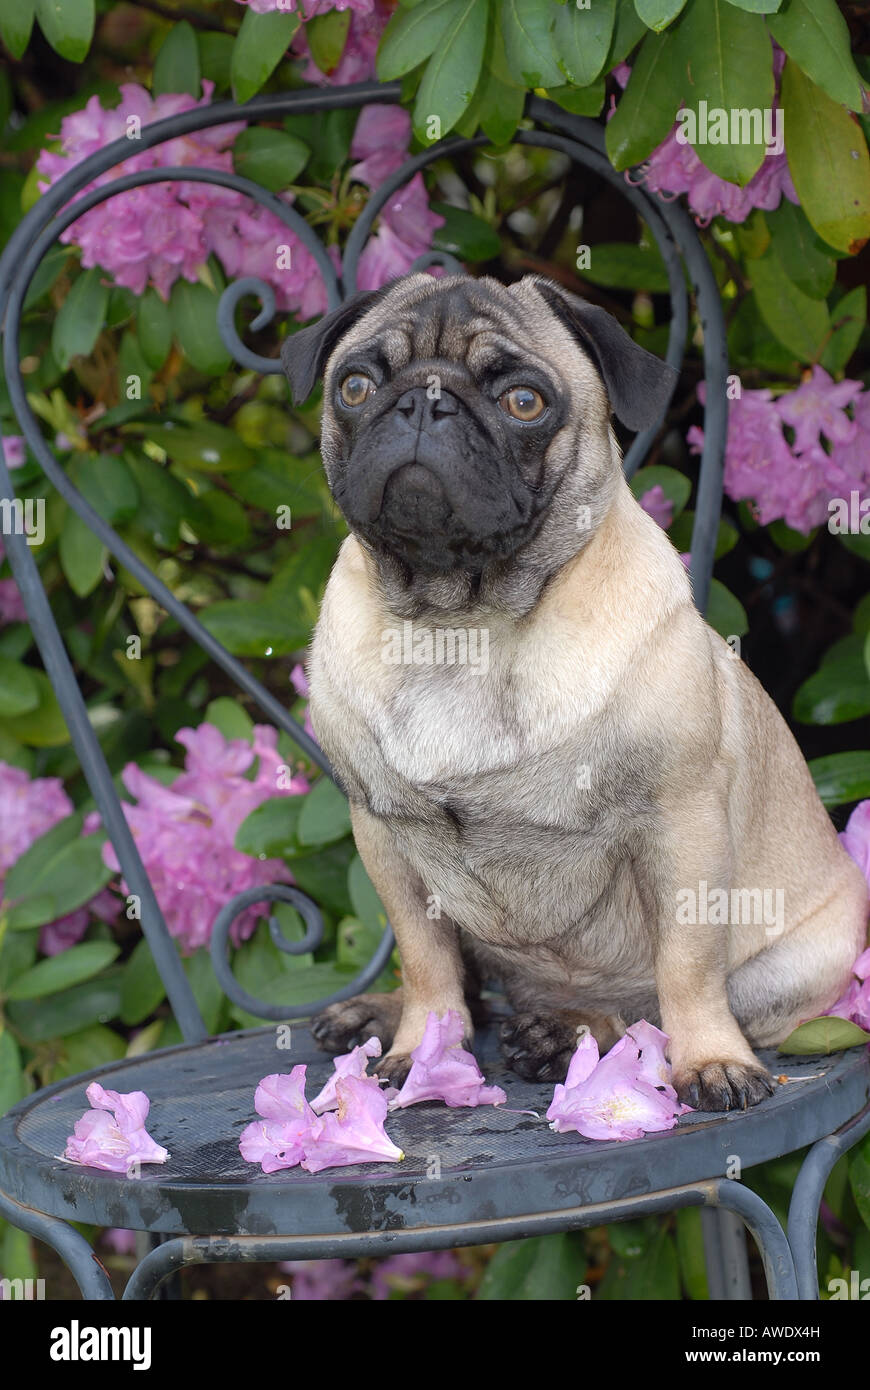 Pug Dog on chair in garden - Stock Image